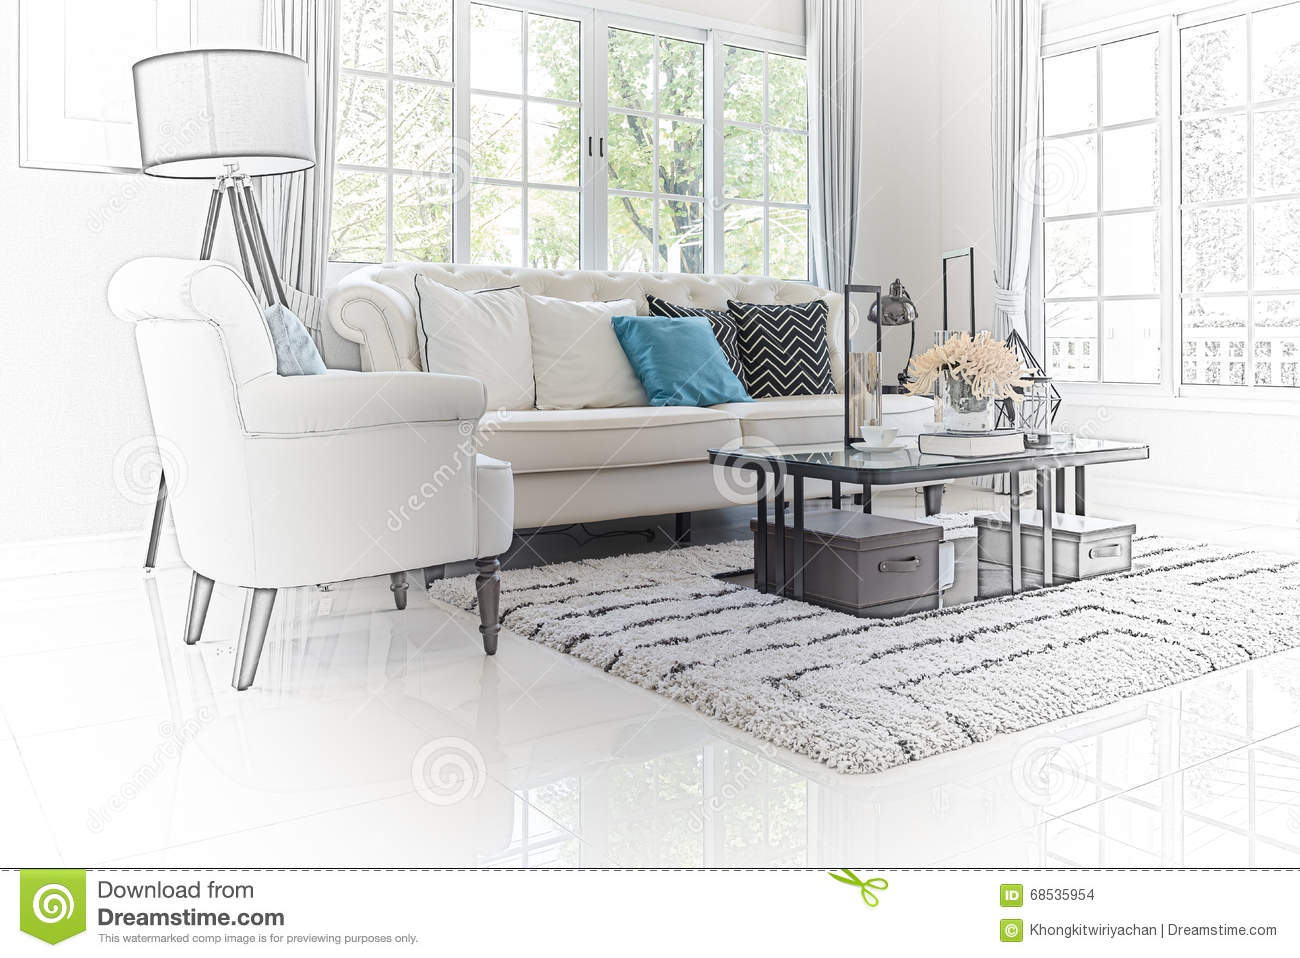 Modern furniture sketches chair sketches - Chair And Furniture Sketch Design Of Modern Living Room Interior Stock Images